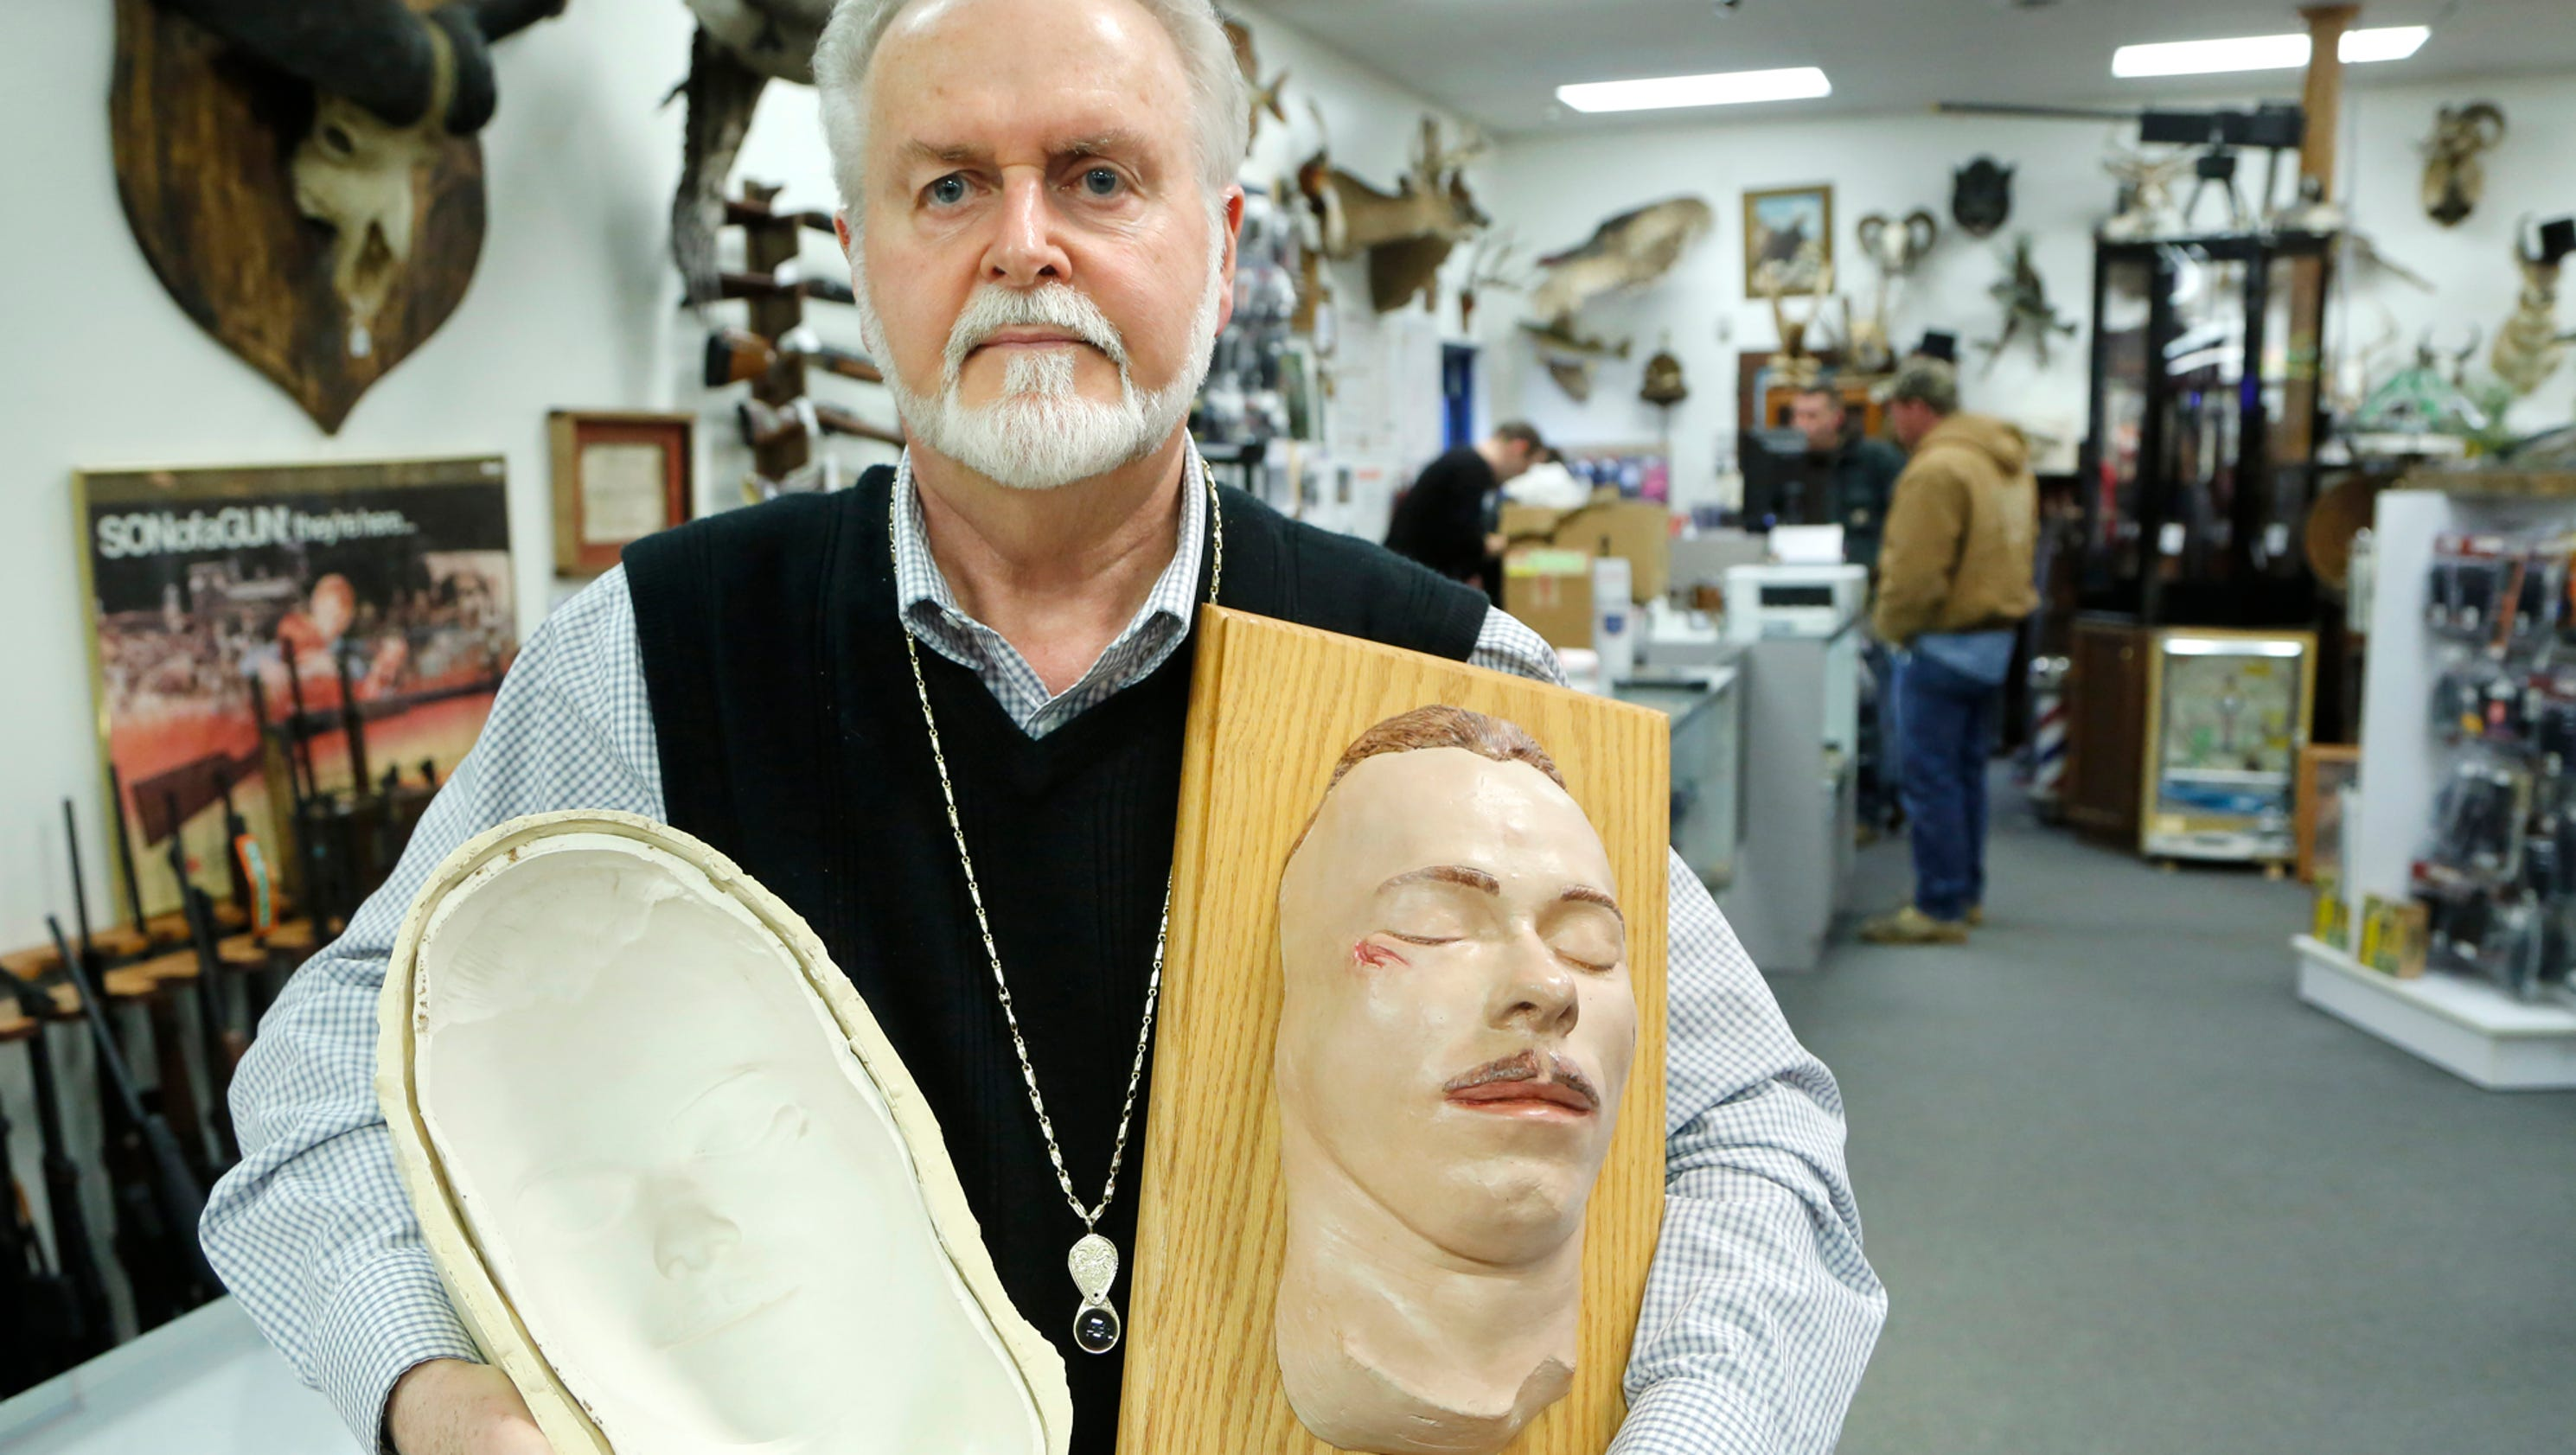 Death mask surfaces at local emporium for Lafayette cds 30